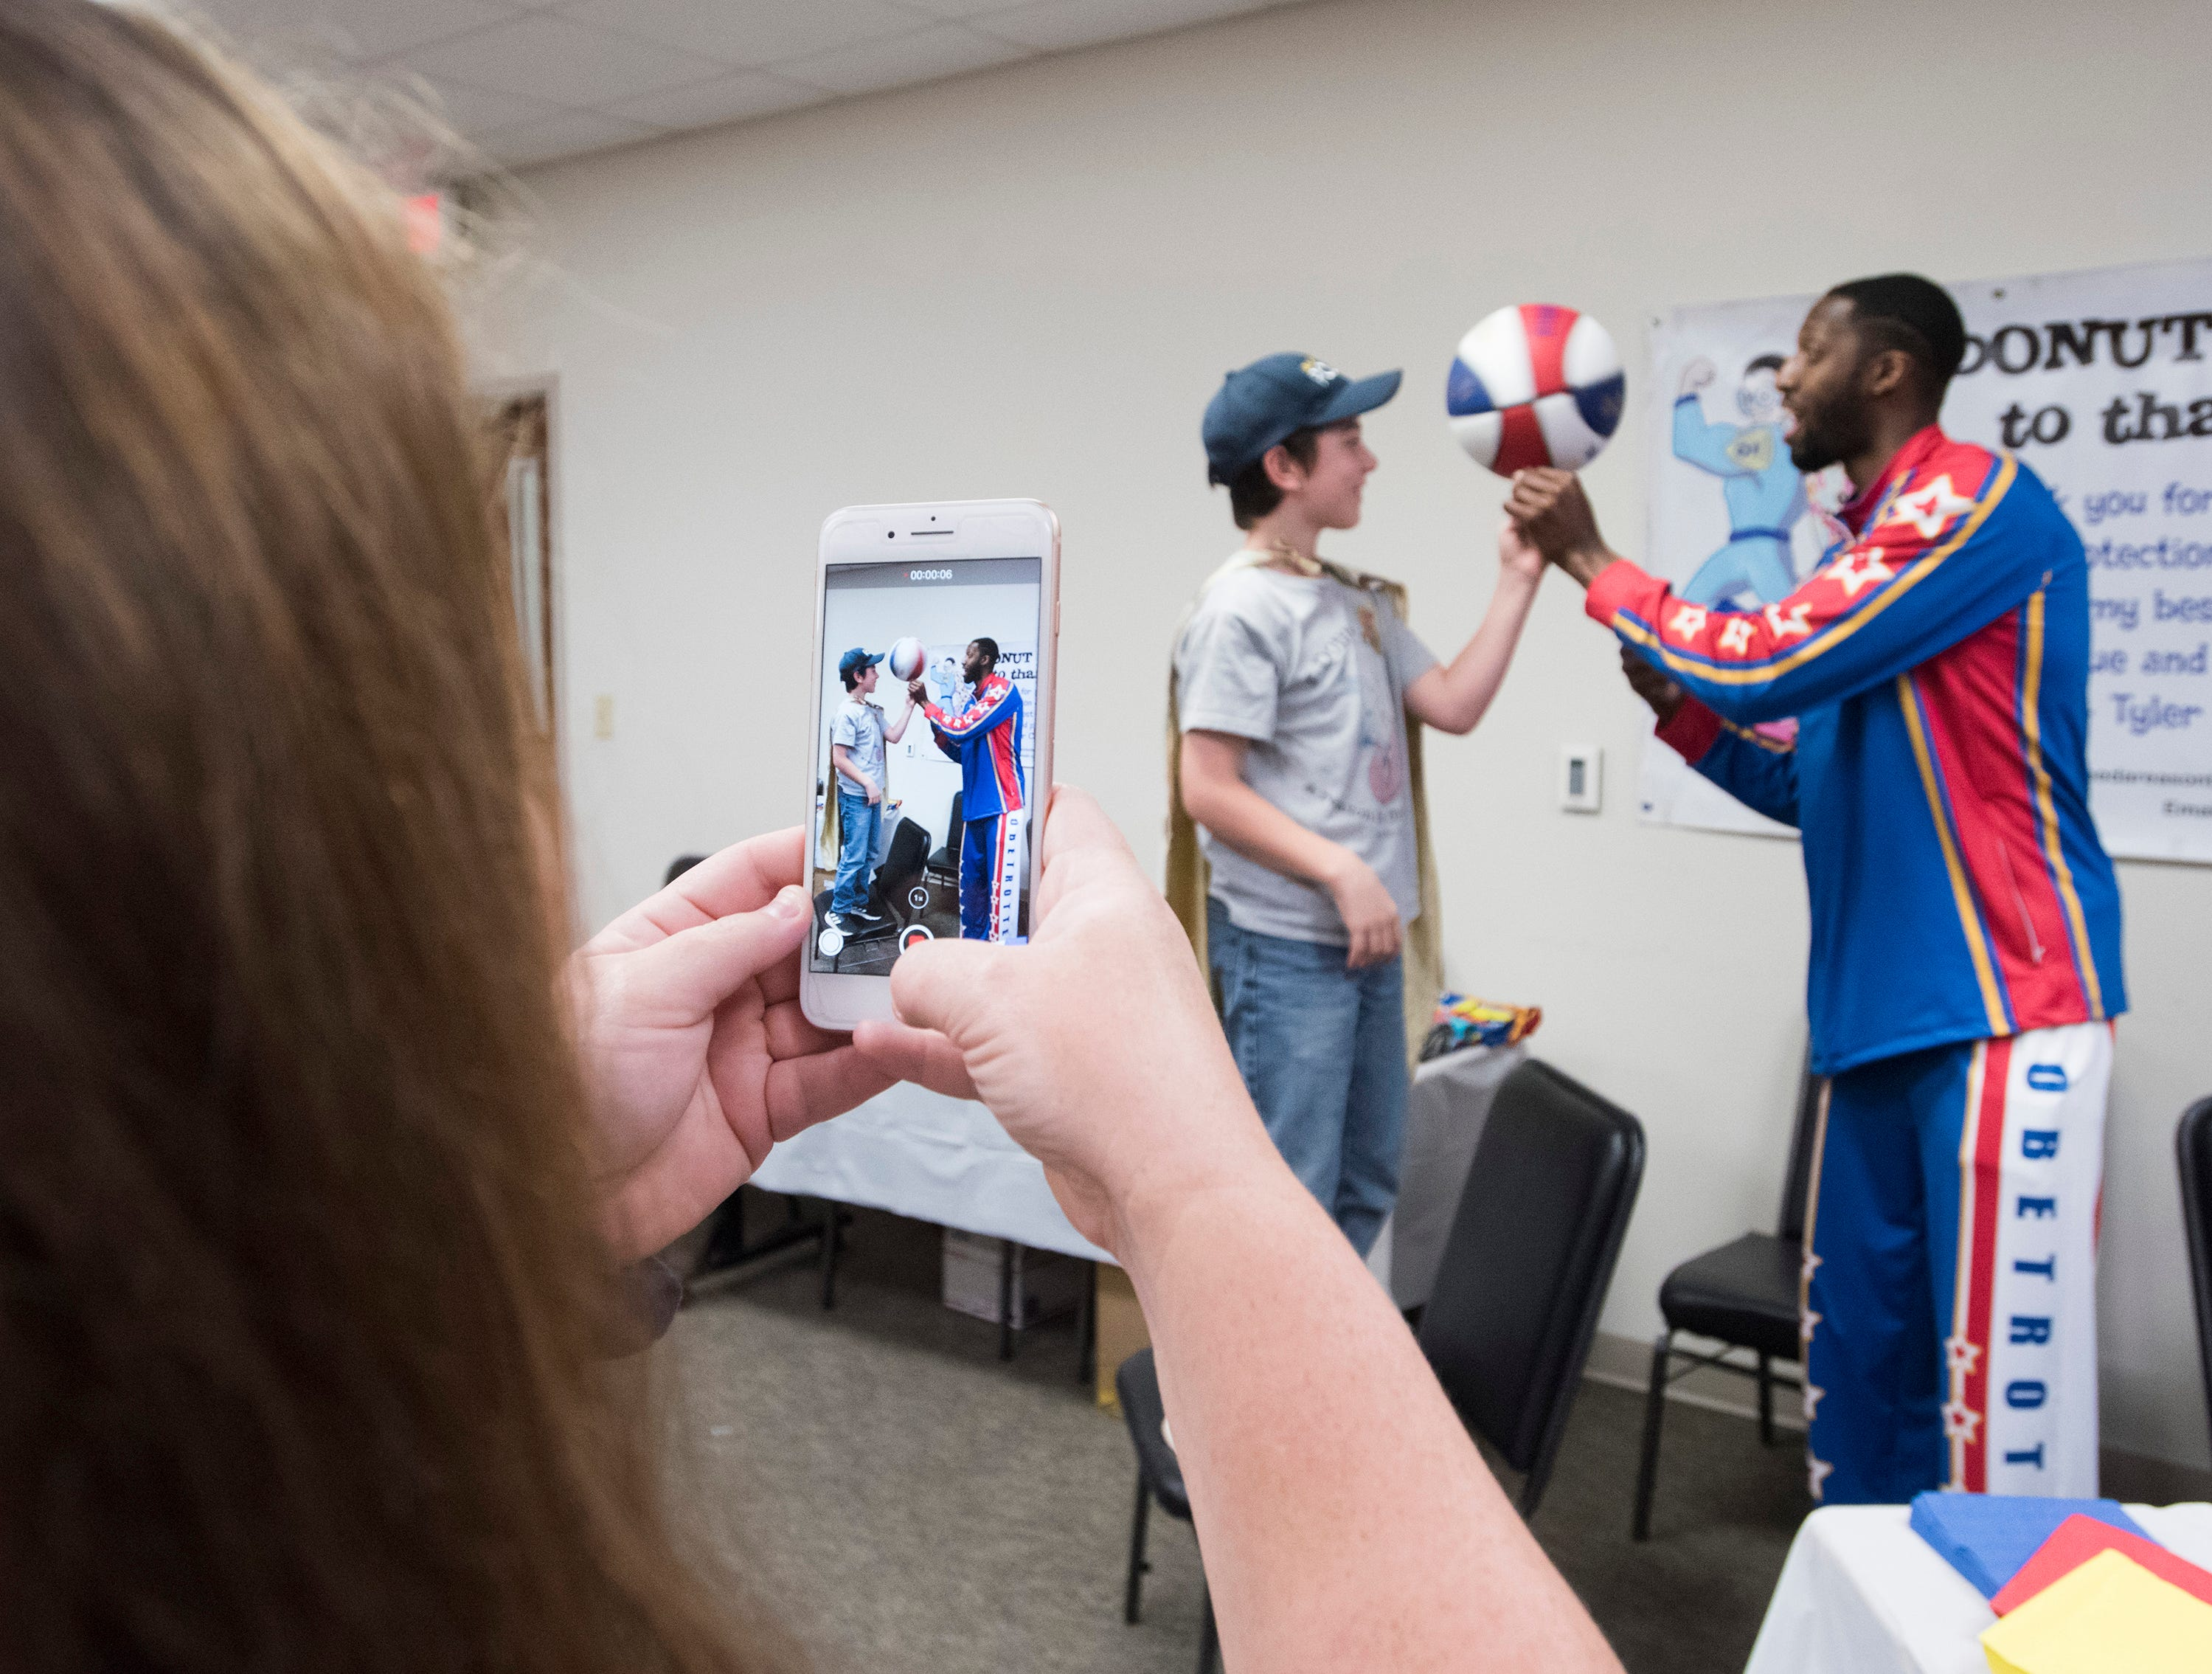 Sheena Carach records the moments Bulldog Mack, a member of the Harlem Globetrotters, teaches her son, Tyler Carach, a few tricks during his visit to the Pensacola Police Department on Wednesday, Nov. 7, 2018.